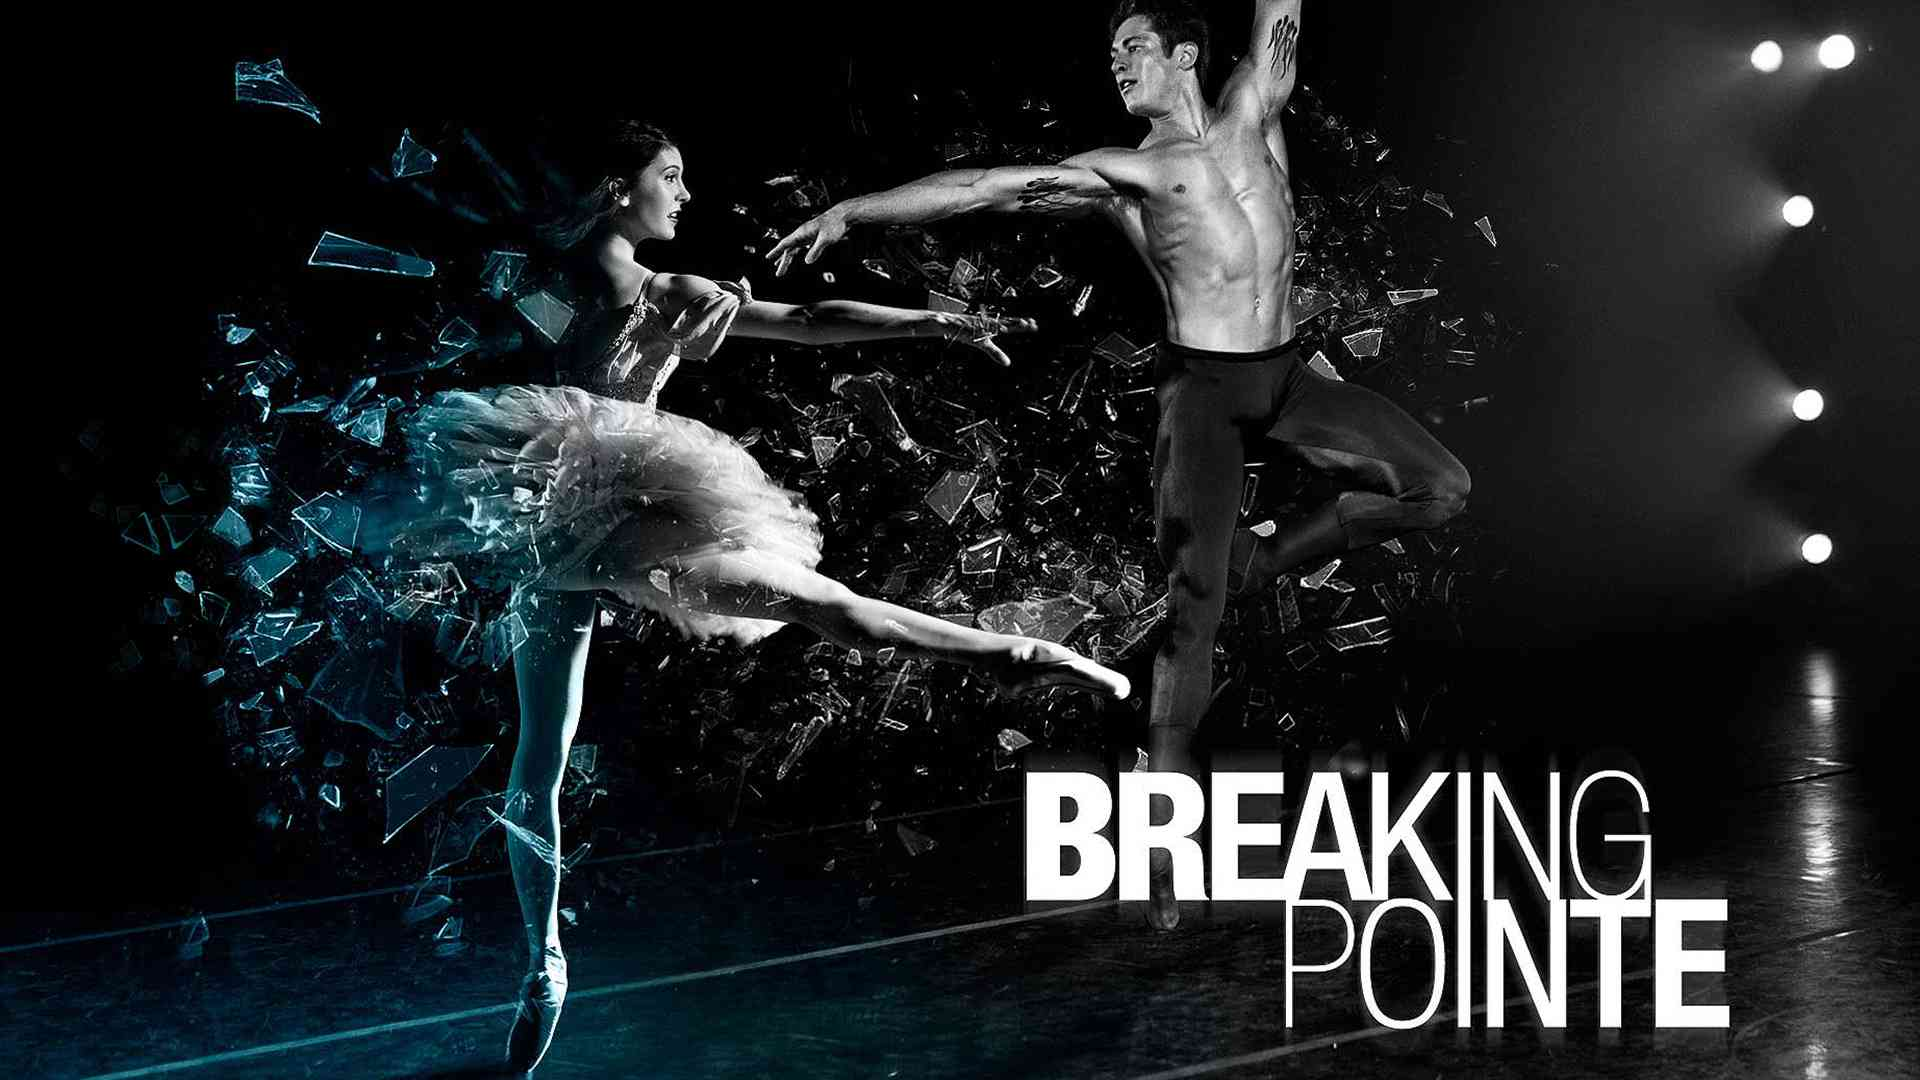 Breaking Pointe -with art.jpg